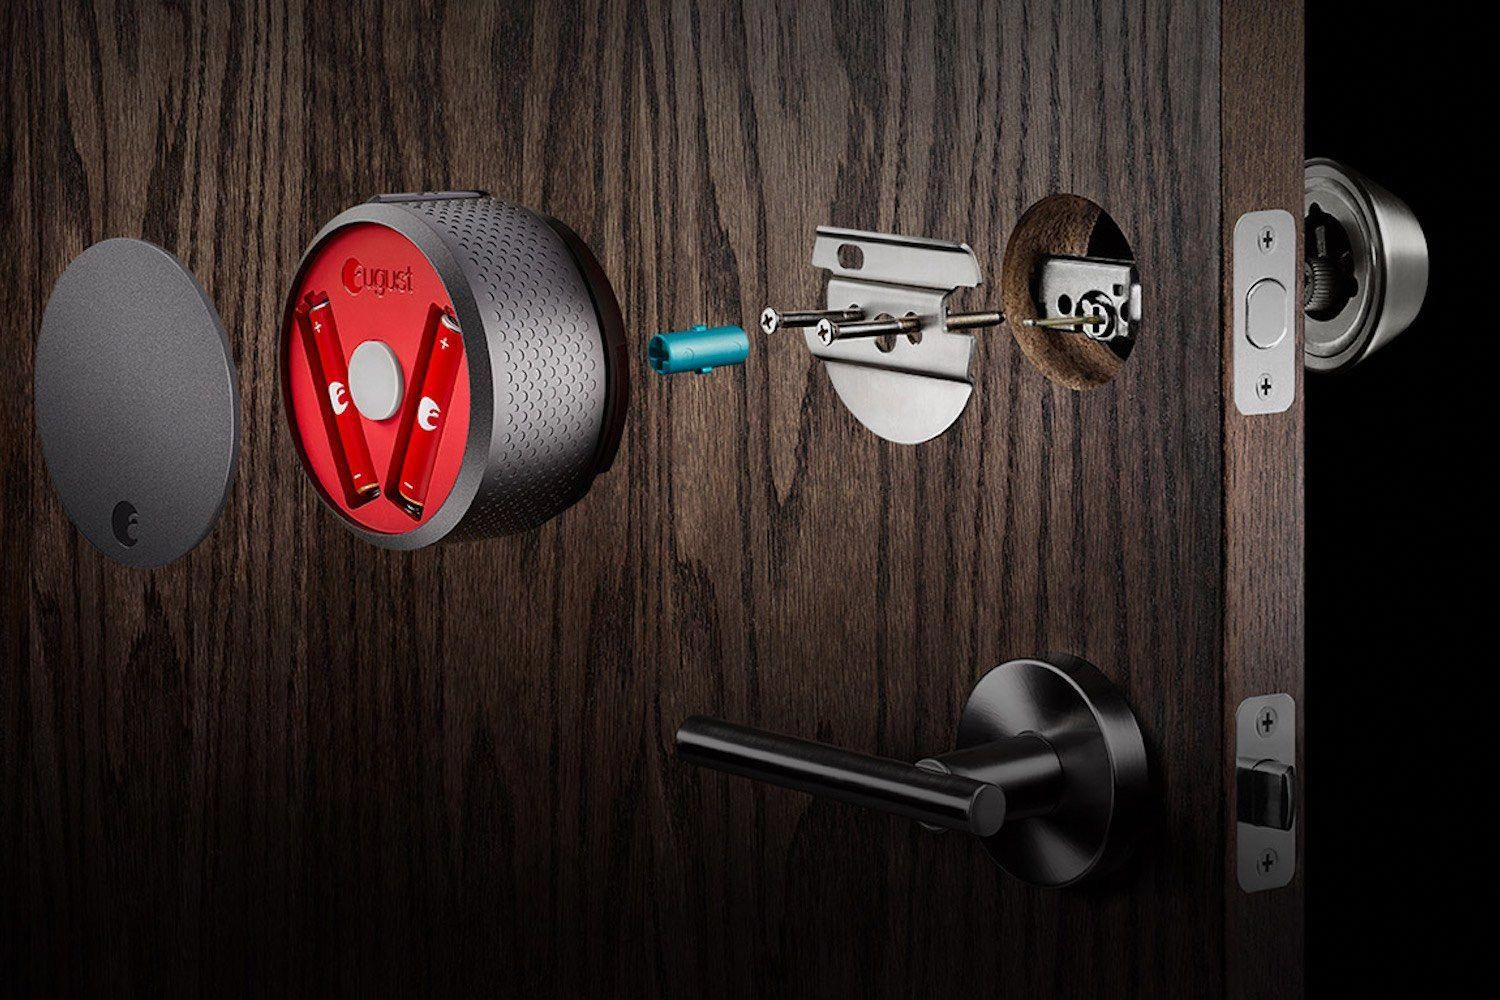 August Smart Lock Now With Homekit Support Review Frontdoor Smart Door Locks August Smart Lock Kit Homes